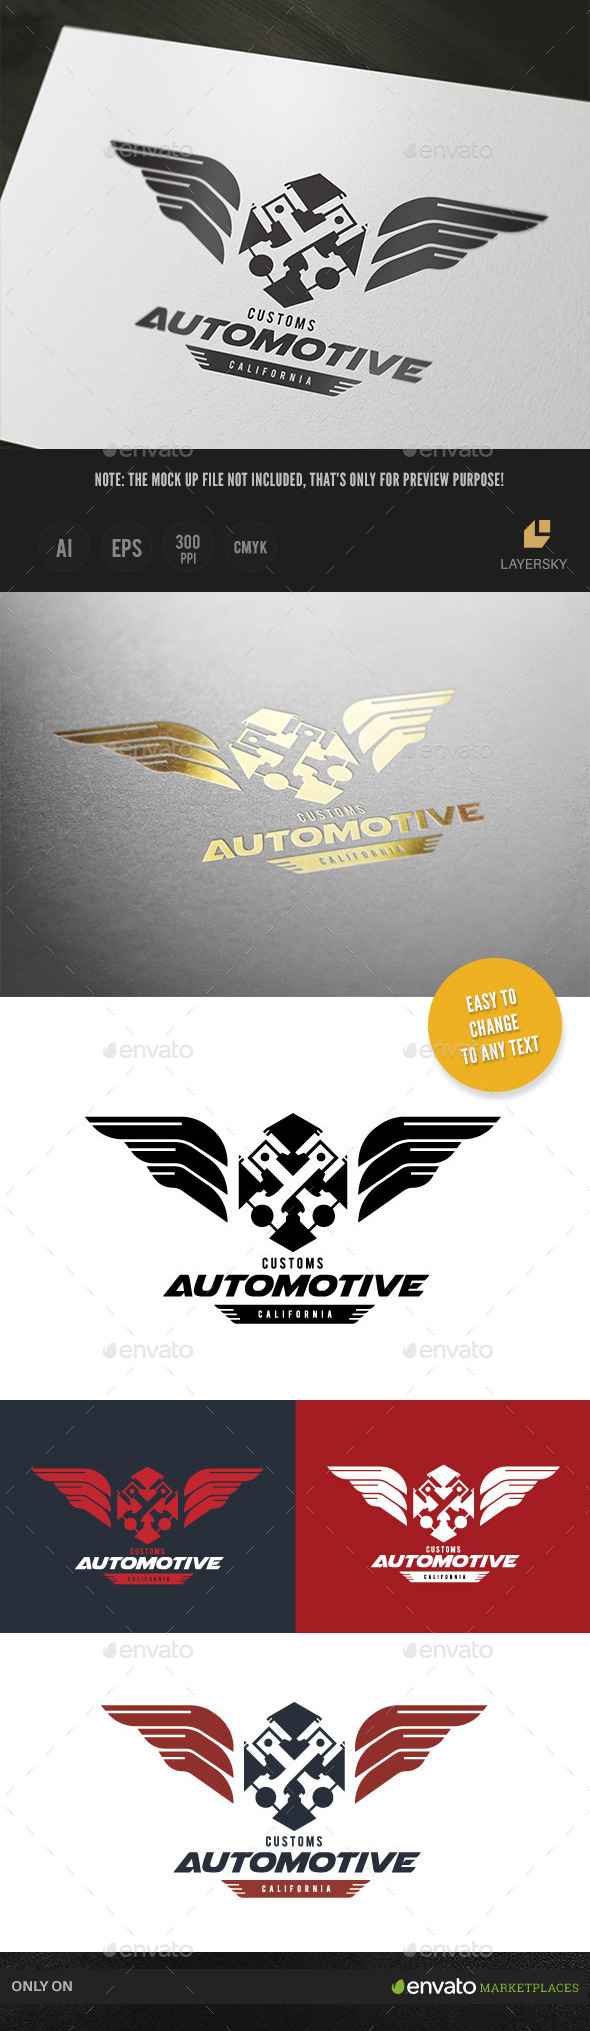 Custom Automotive - Crests Logo Templates